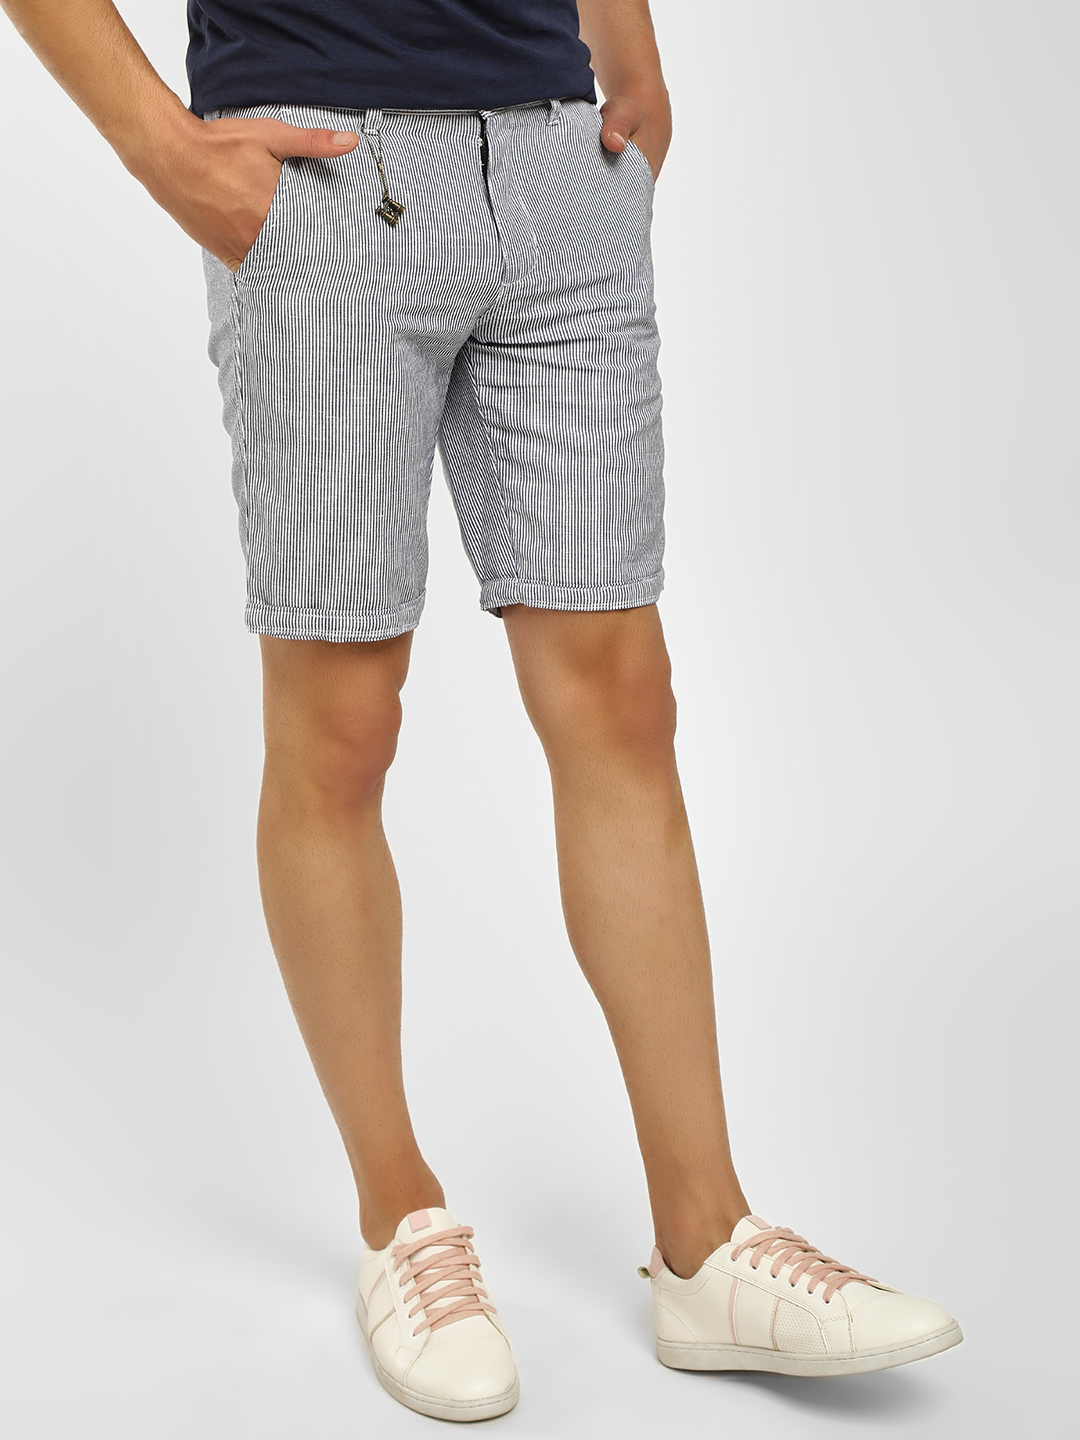 Buffalo Navy Plain Striped Woven Shorts 1